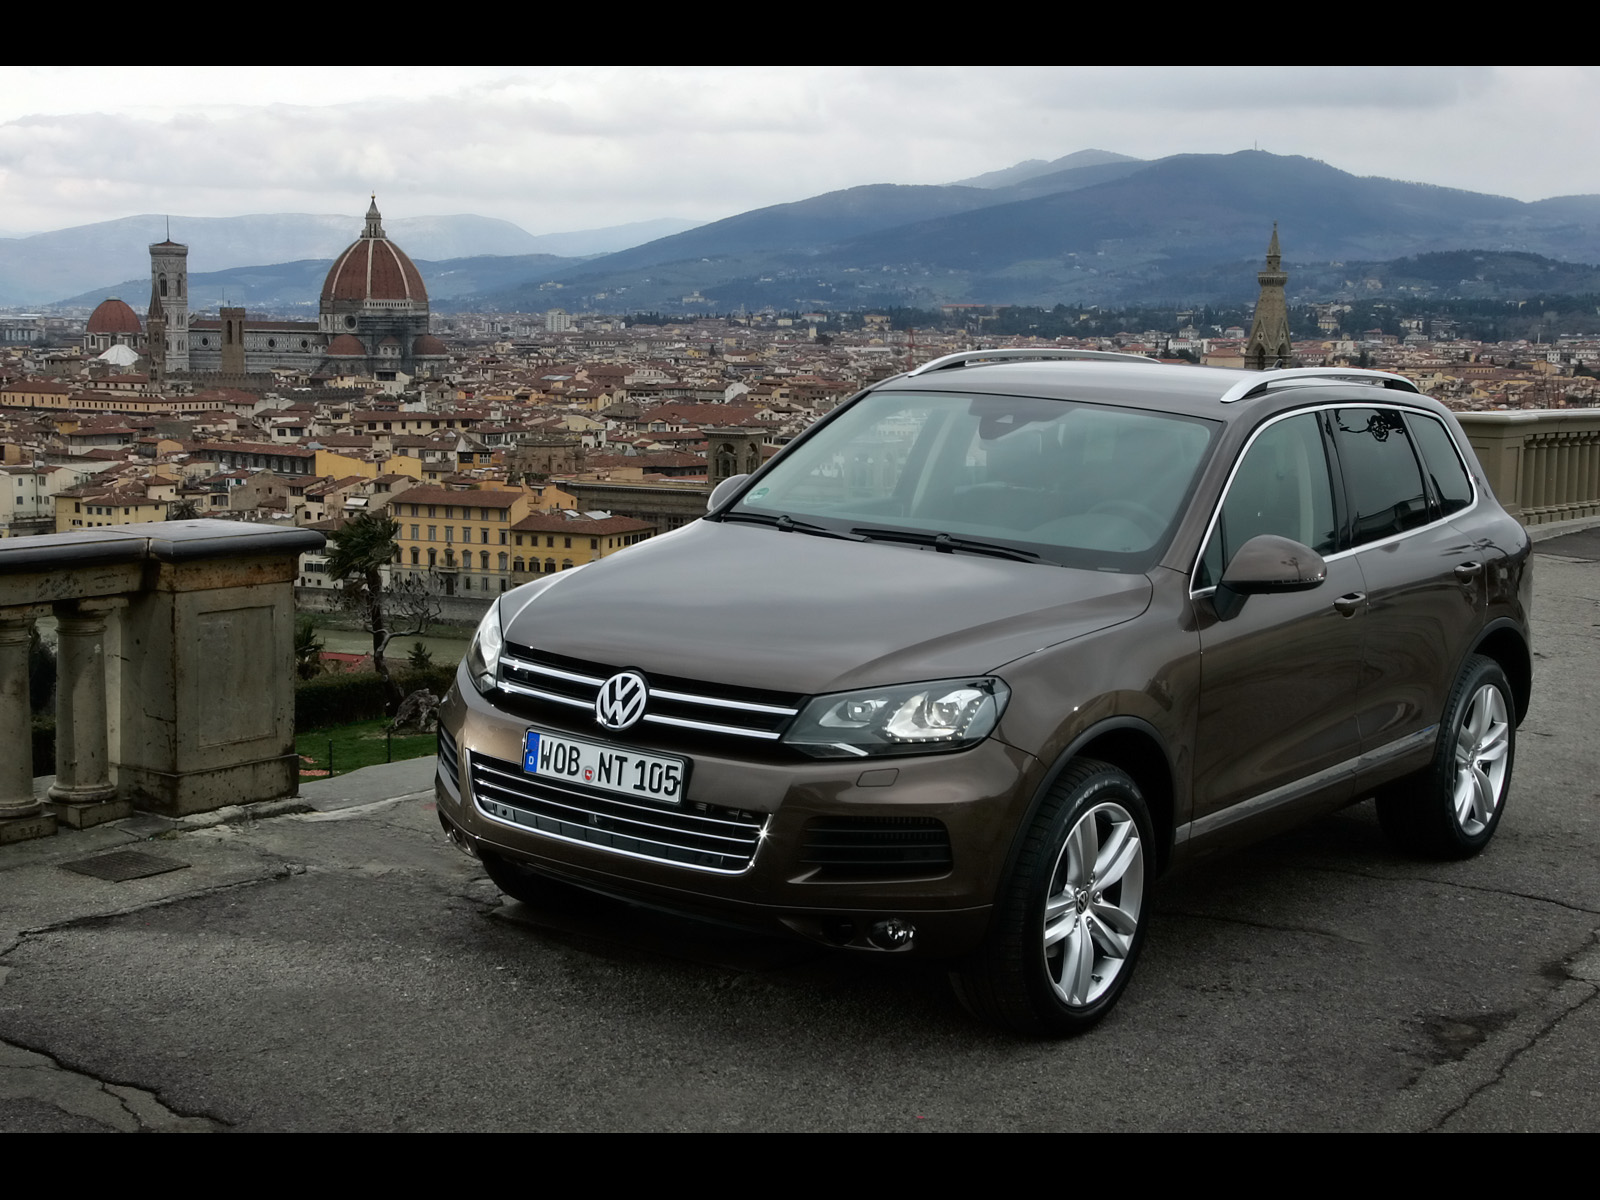 Vw Gti Wallpaper Iphone New Vw Touareg V6 Tdi Front Angle Wallpapers New Vw